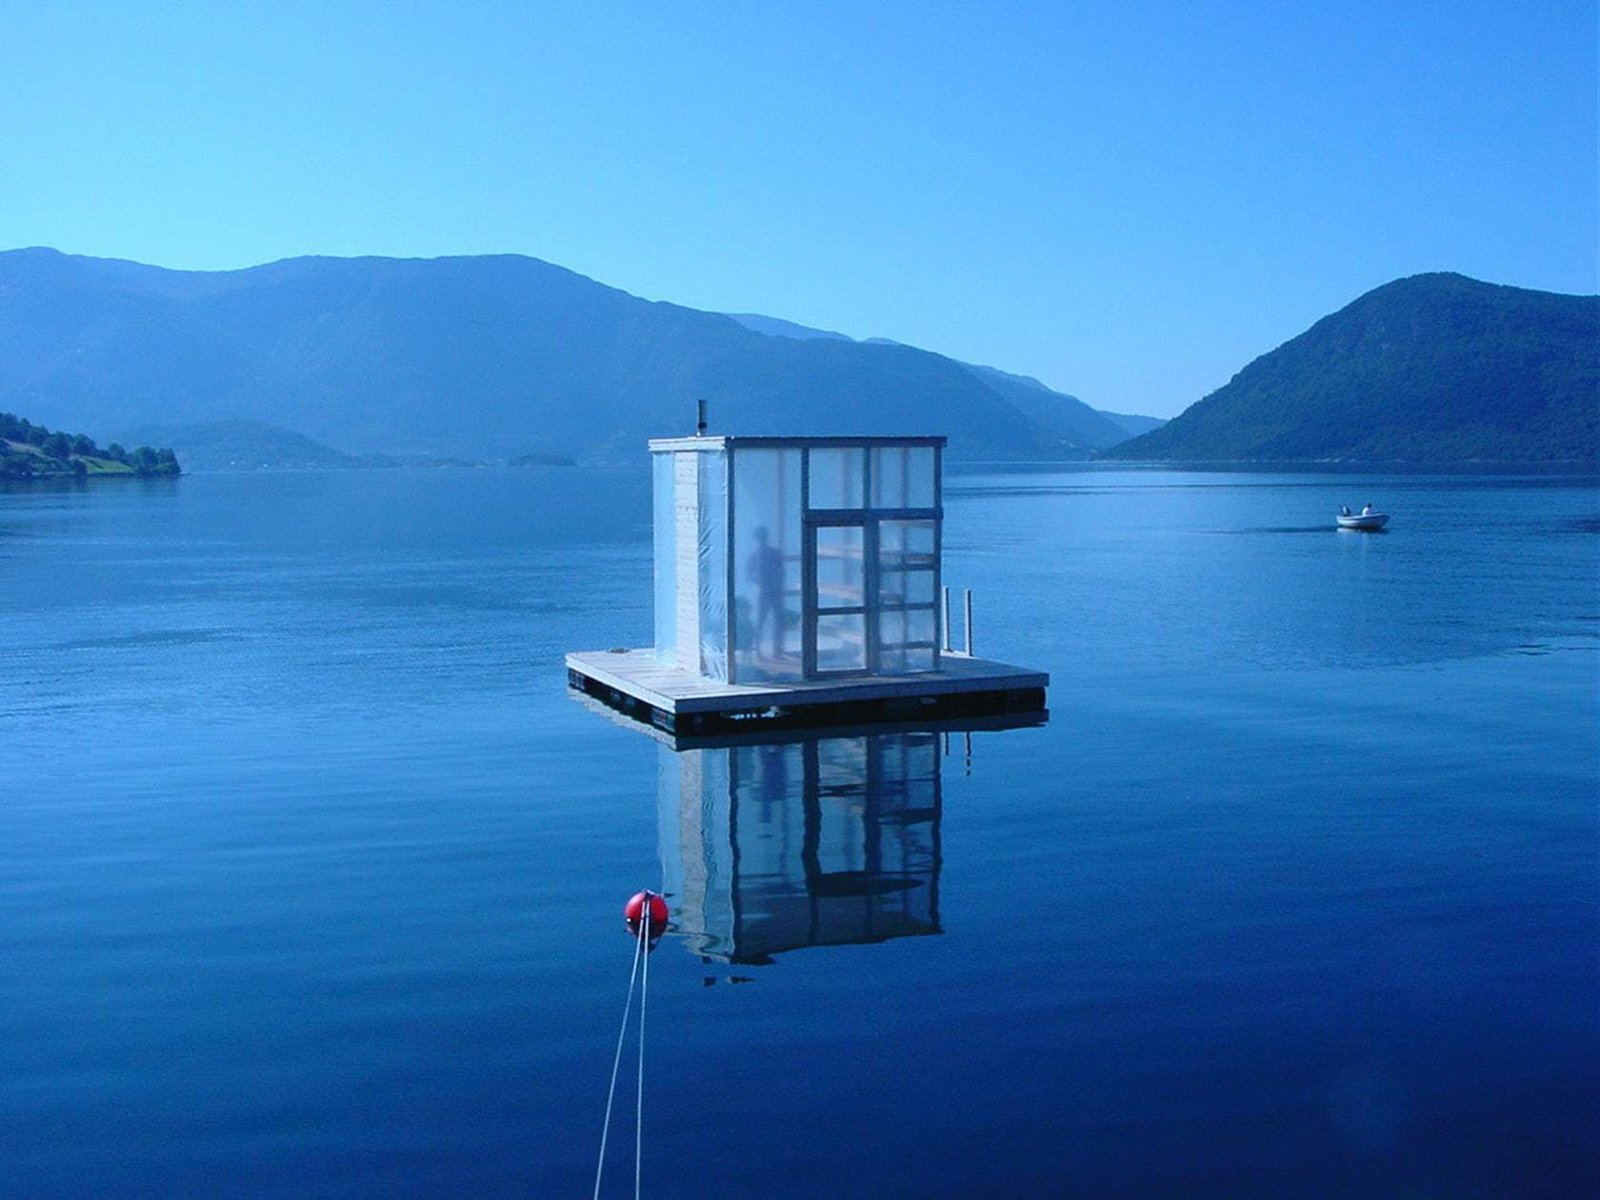 Shed & Studio Designed by Marco Casagrande, this floating sauna was a gift for the Rosendal community, a village at the end of the majestic Hardangerfjord in Norway.  Best Shed & Studio Photos from Saunas